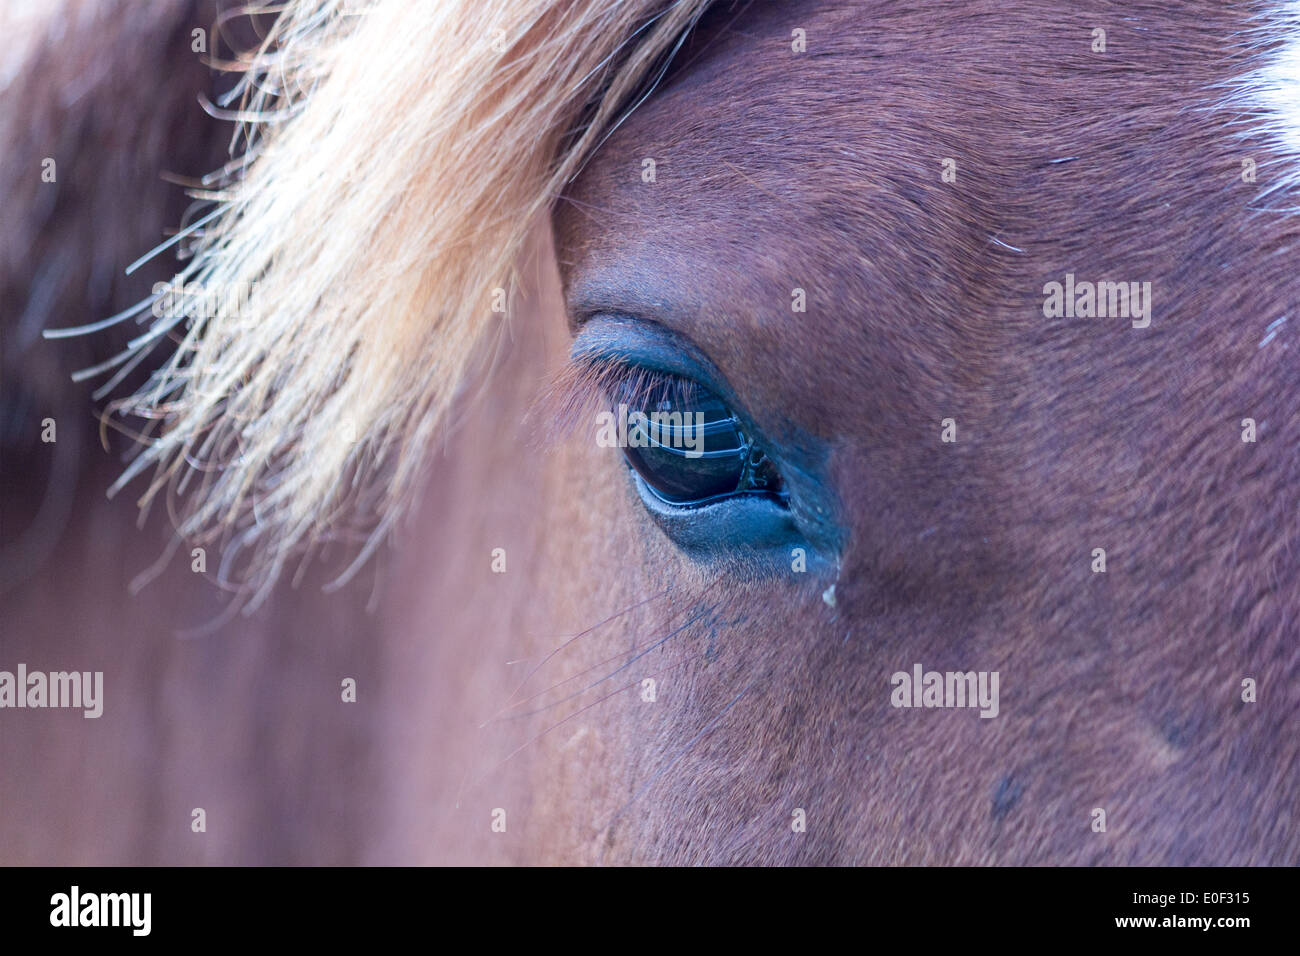 horses-eye-where-you-can-see-the-reflect